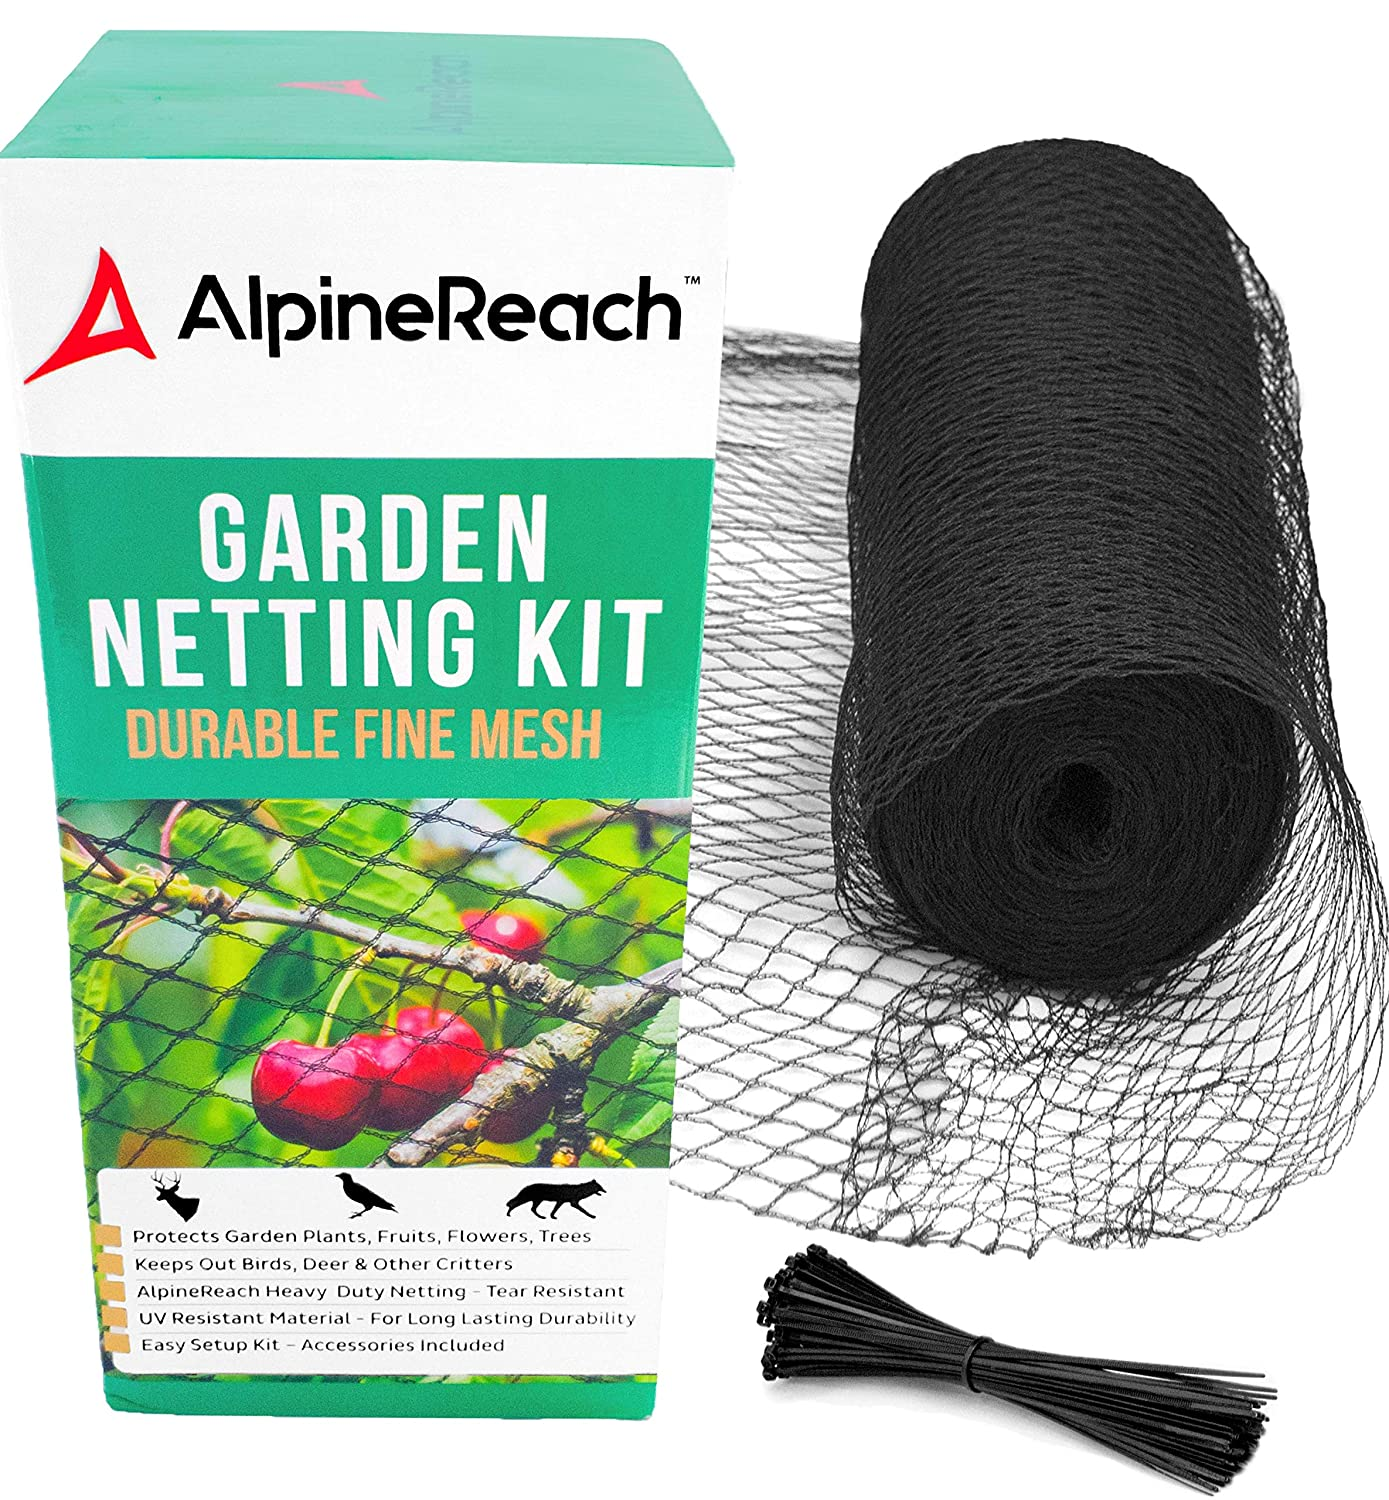 AlpineReach 7.5 x 65 Feet Garden Mesh Black Netting Kit Gift Box – Protect Plants Fruits Flowers Trees – Stretch Fencing Durable Net with Zip Ties – Fine Mesh Heavy Duty Cover Stops Birds Deer Animals